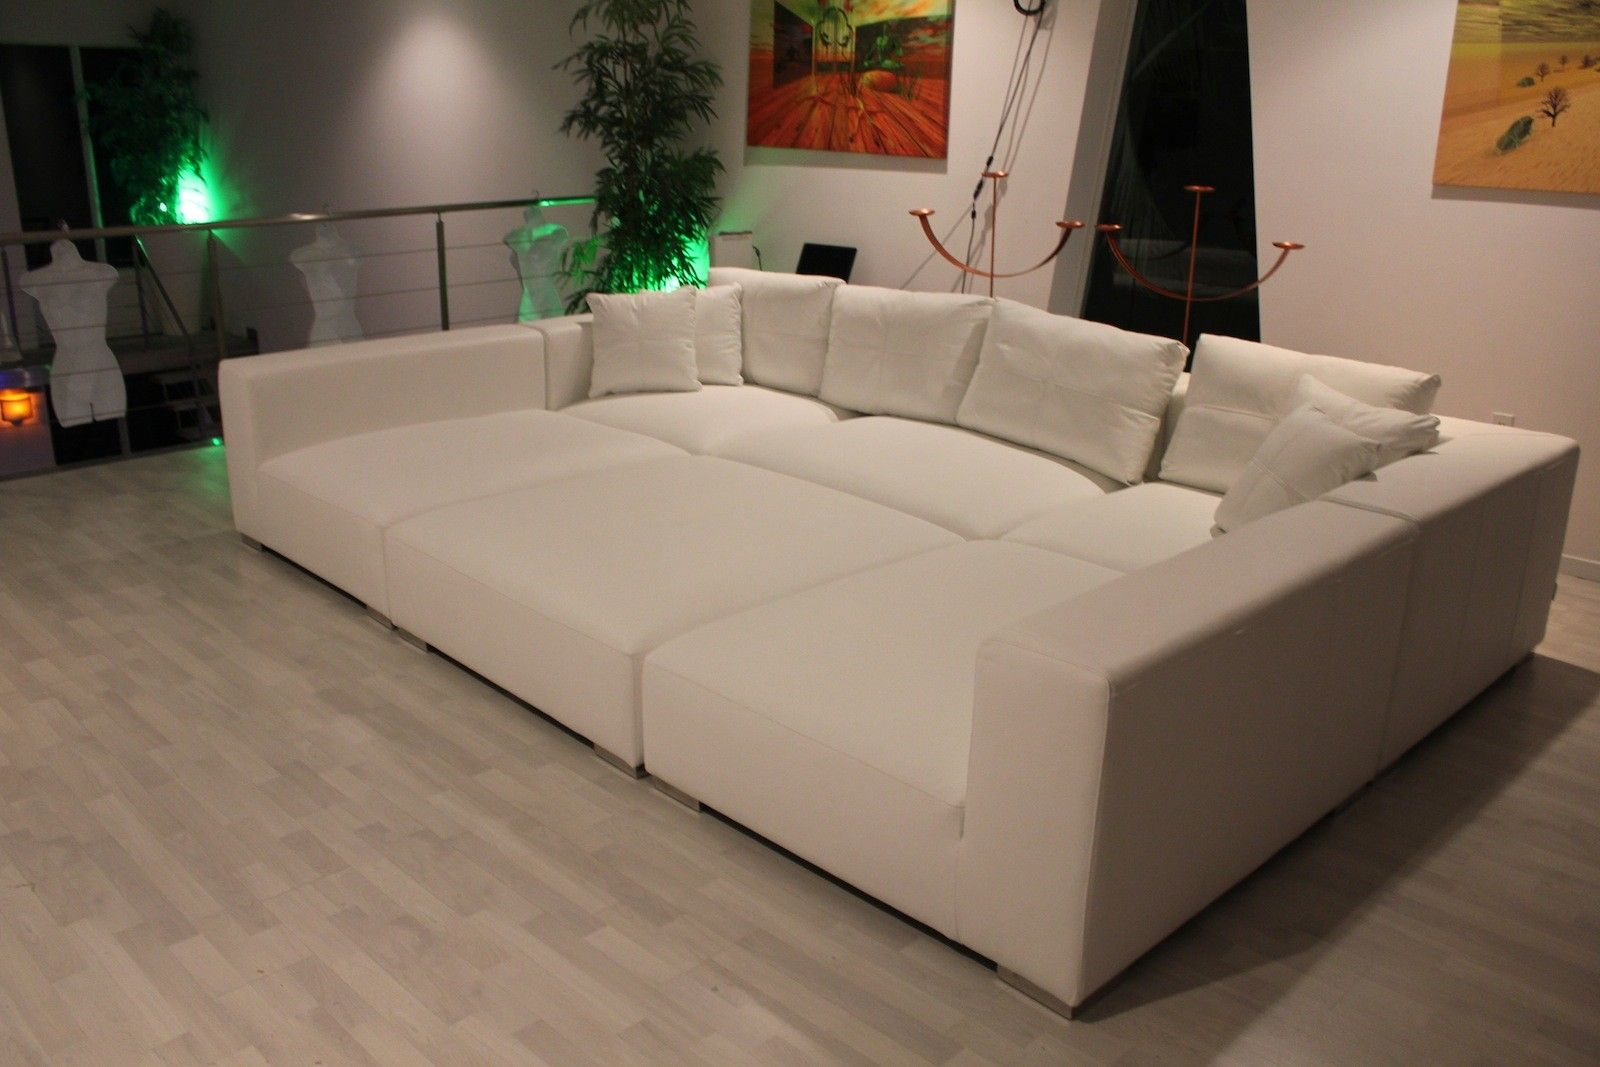 Couch Polstermöbel Sofa Pit It Looks So Comfy D For The Home Pit Sofa Sofa Bed